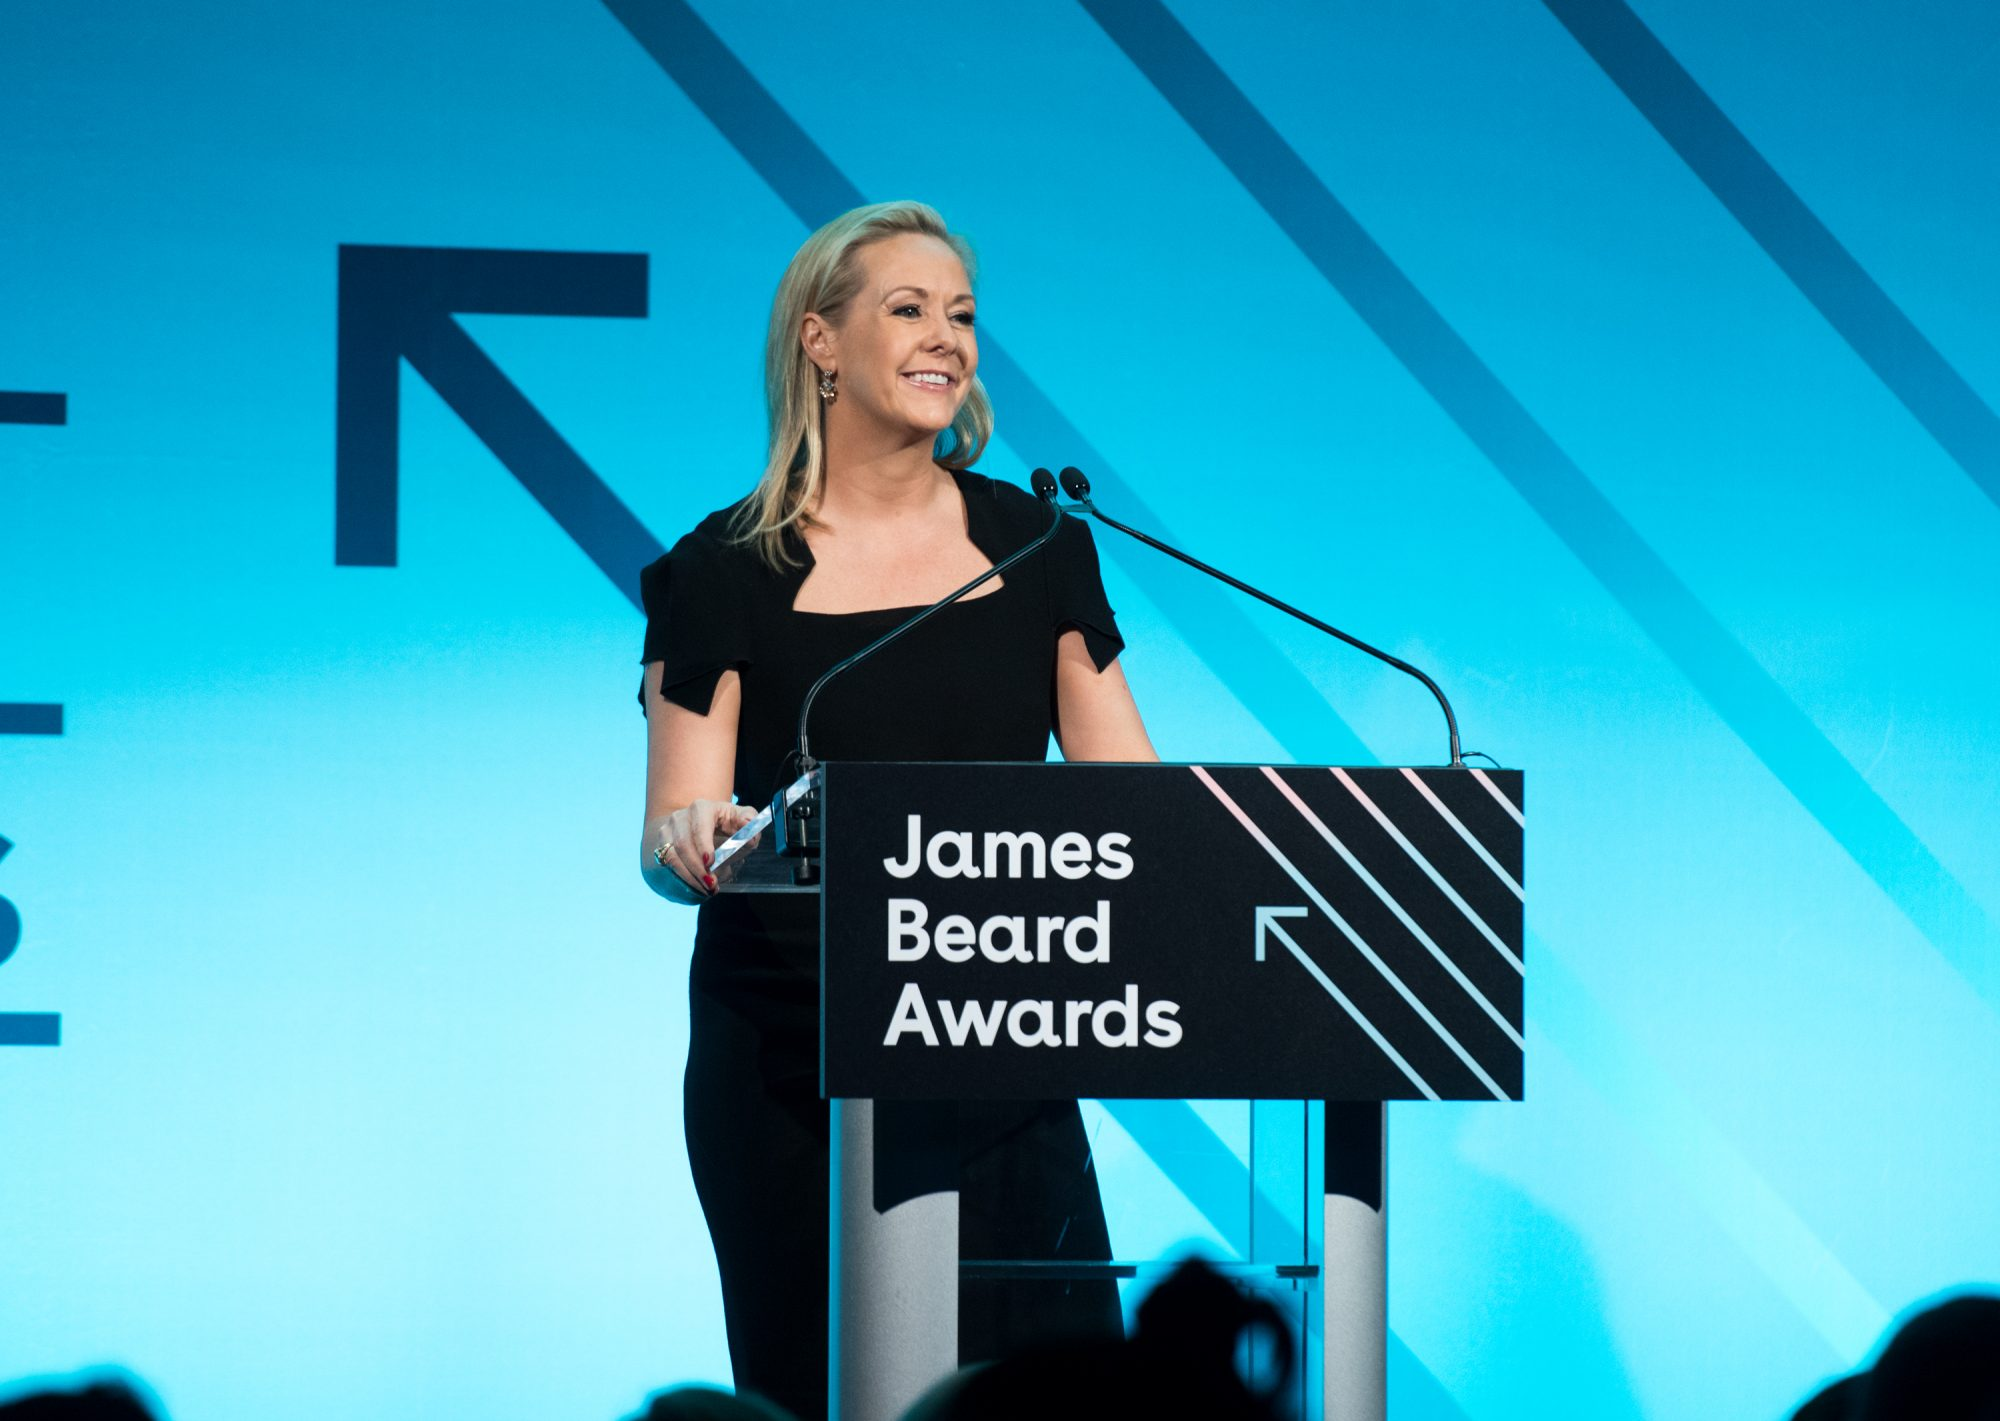 Clare-Reichenbach-James-Beard-Awards-FT.jpg